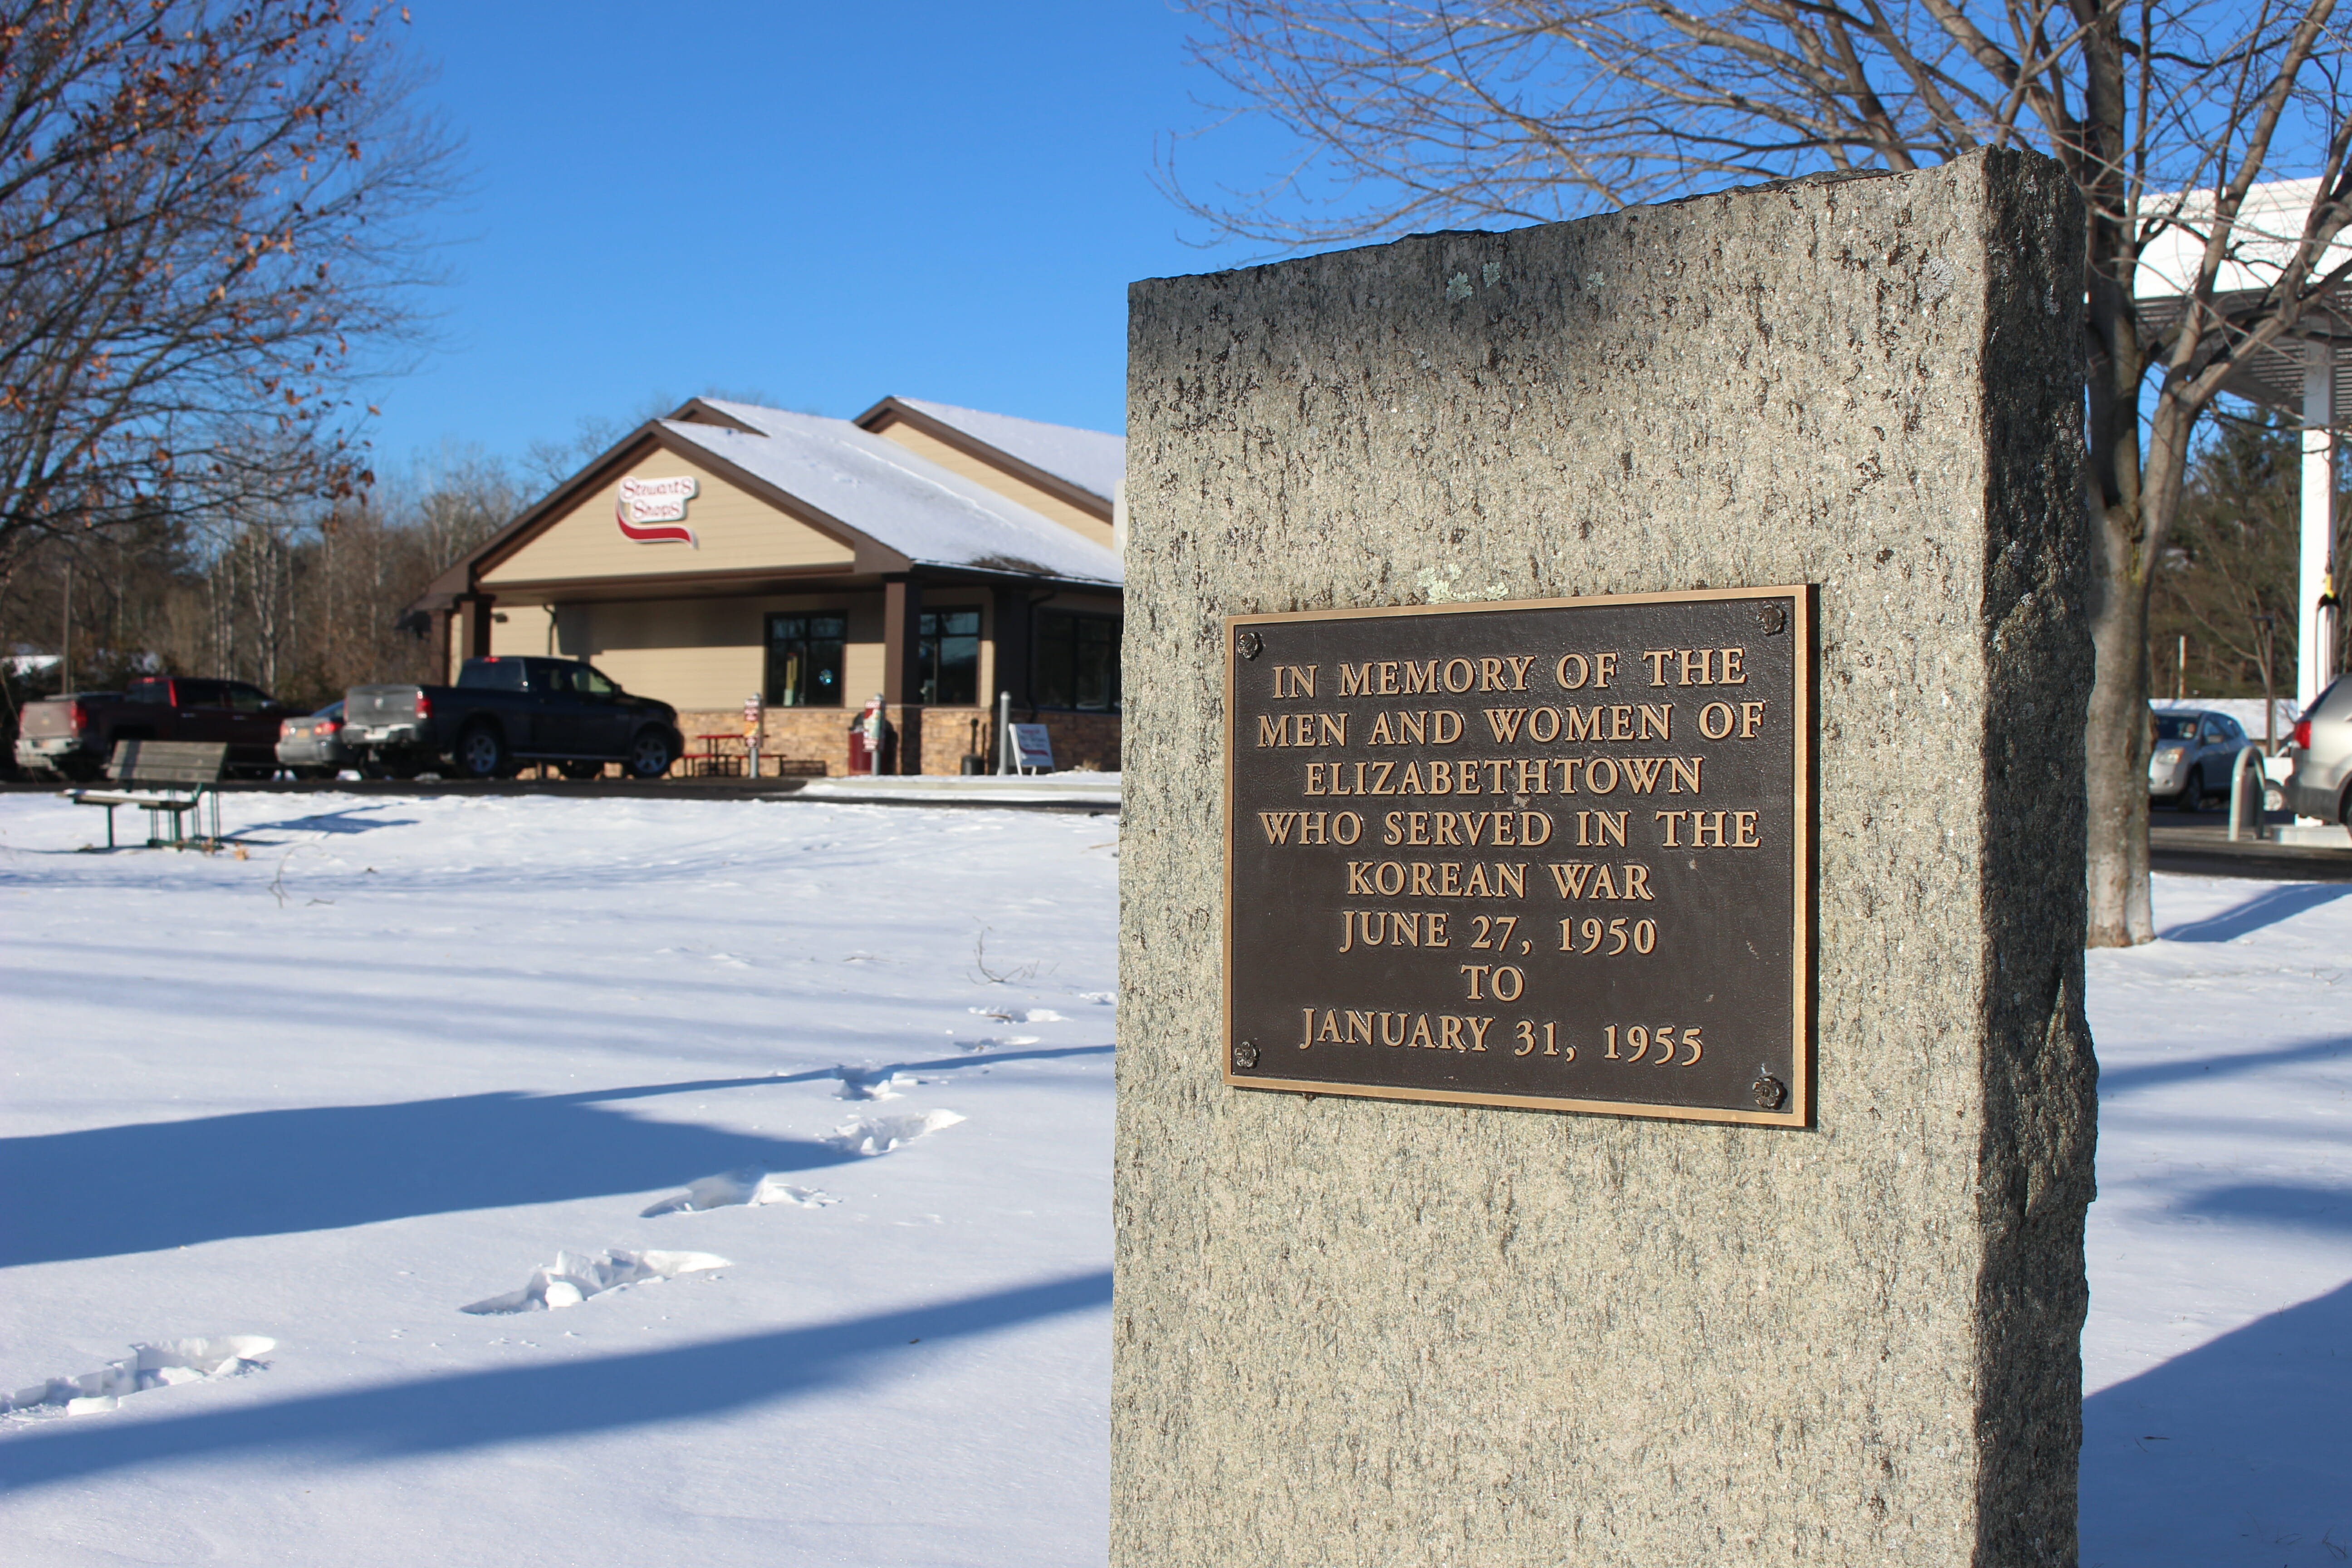 in memory of the men and women of elizabethtown who served in the korean war June 27, 1950 to January 31, 1955 plaque in front of the stewarts shop